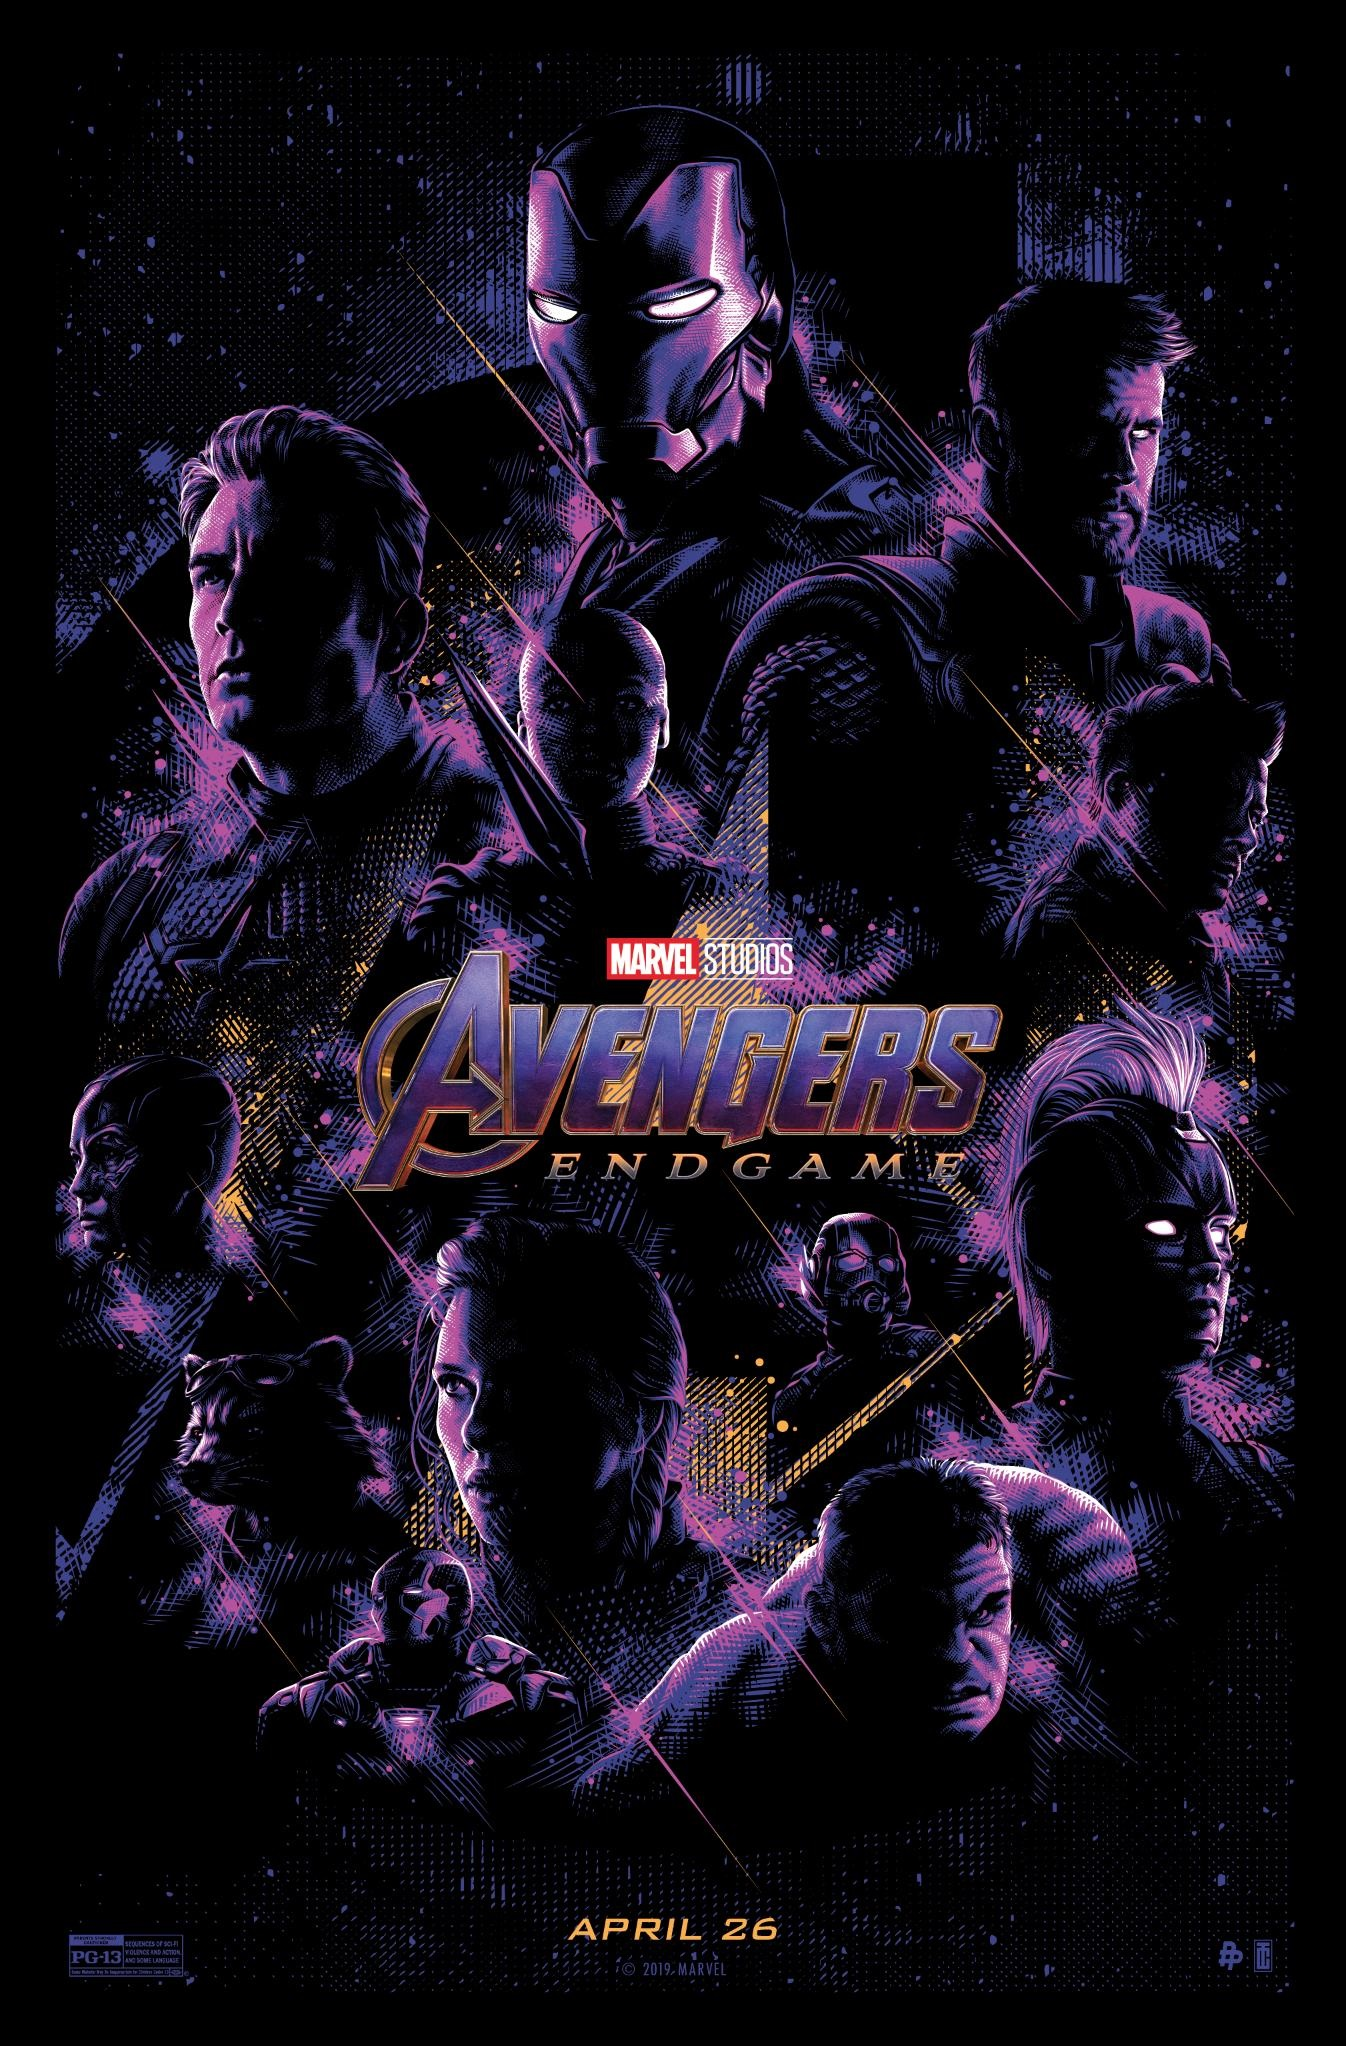 Another Avengers: Endgame inspired poster by Poster Posse